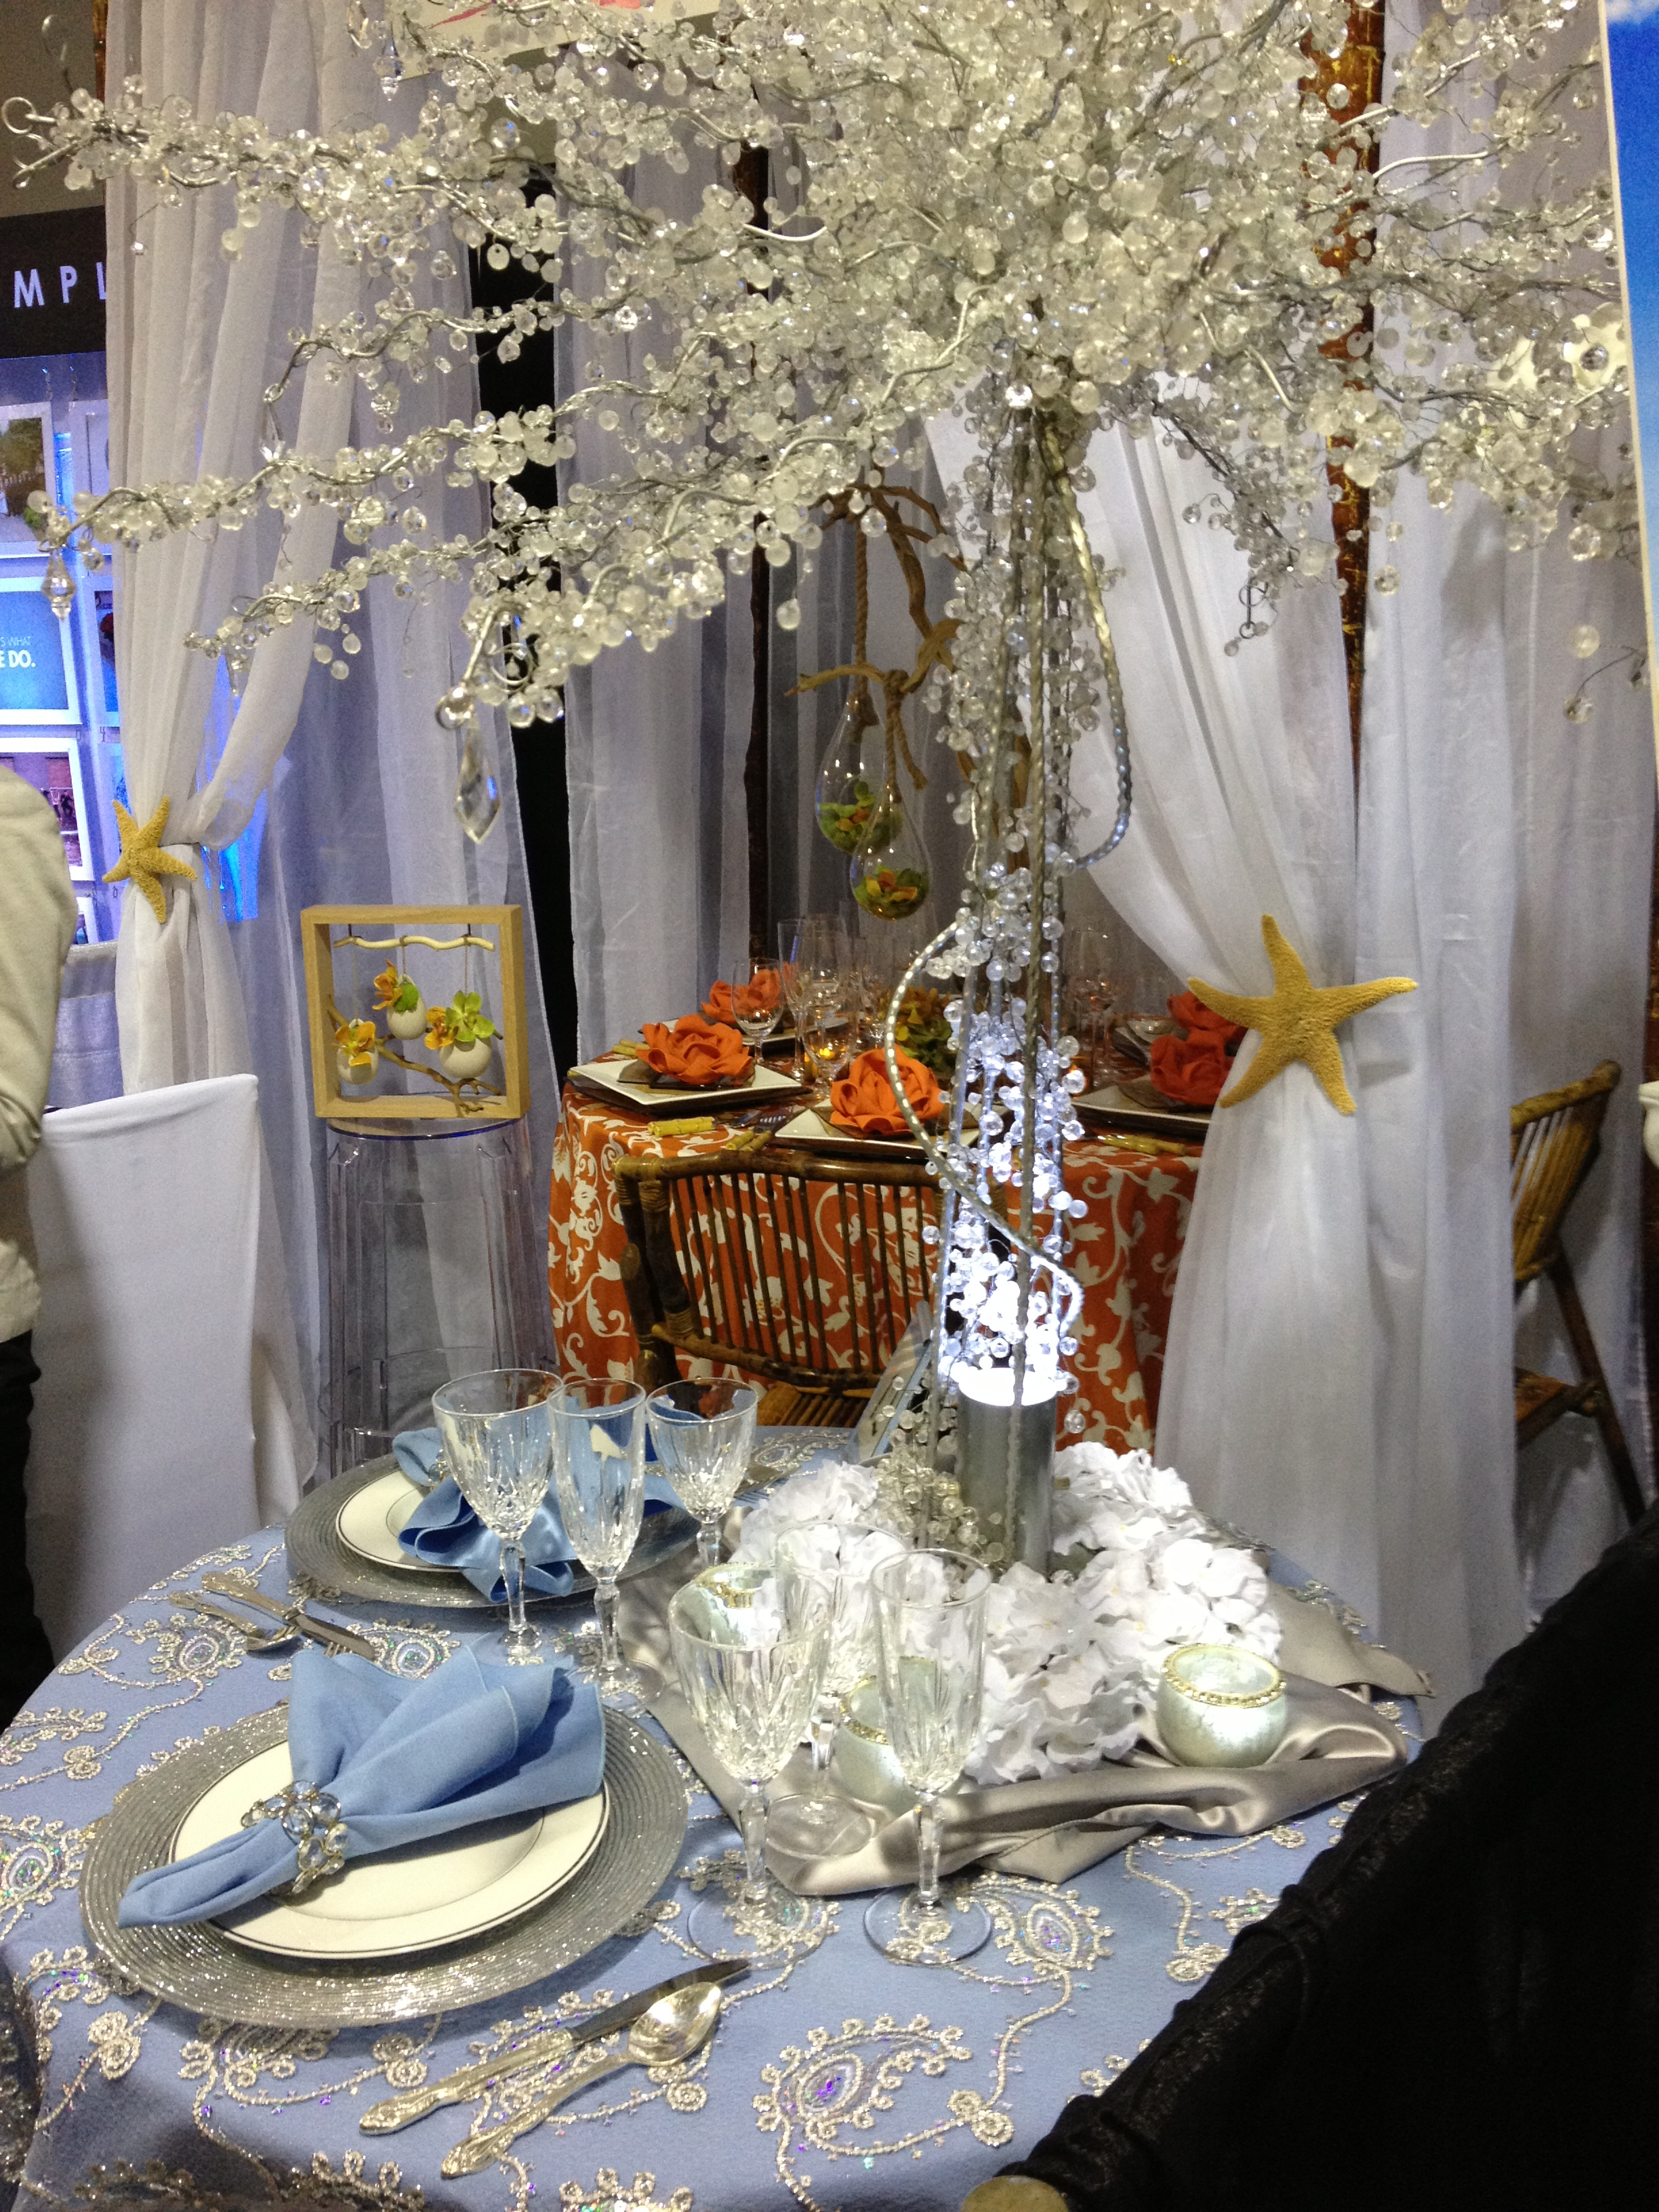 Be sure to stop by the Taylor Rental Booth at the Naples Bridal Expo!